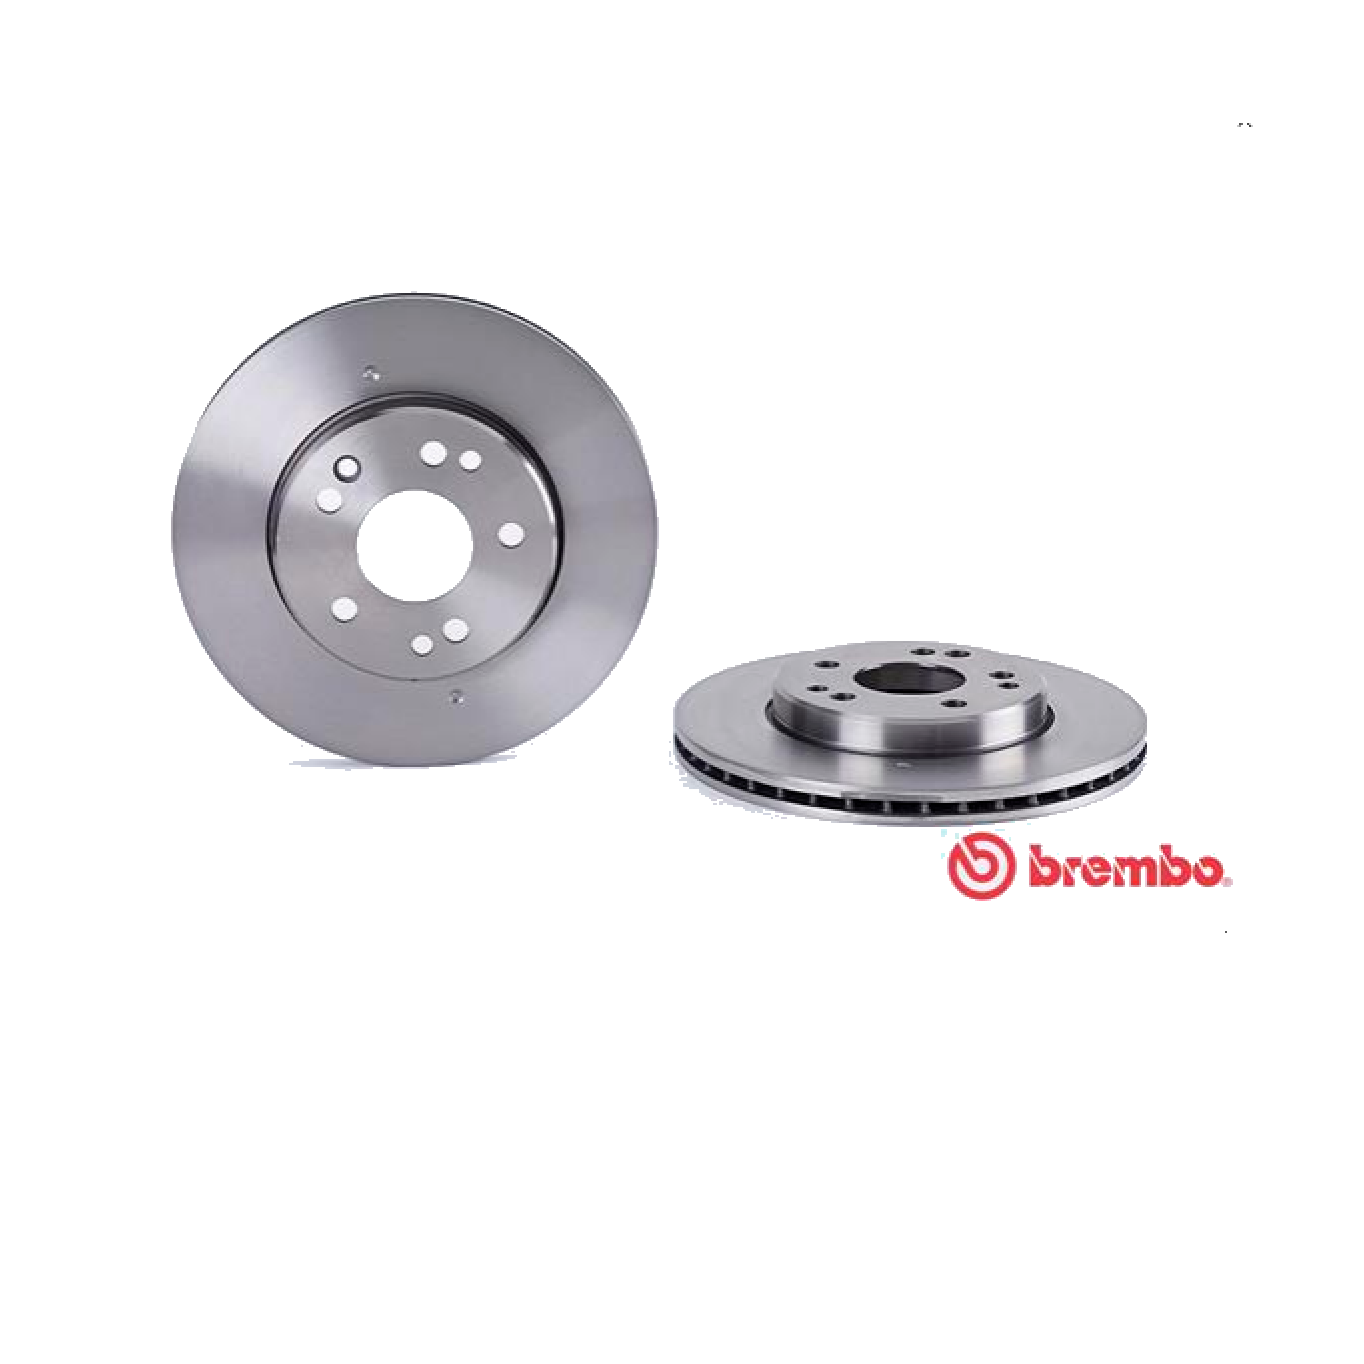 PAIR OF FRONT BRAKE DISCS MERCEDES 190 W201 - BREMBO COUPE 'FOR A1244211612